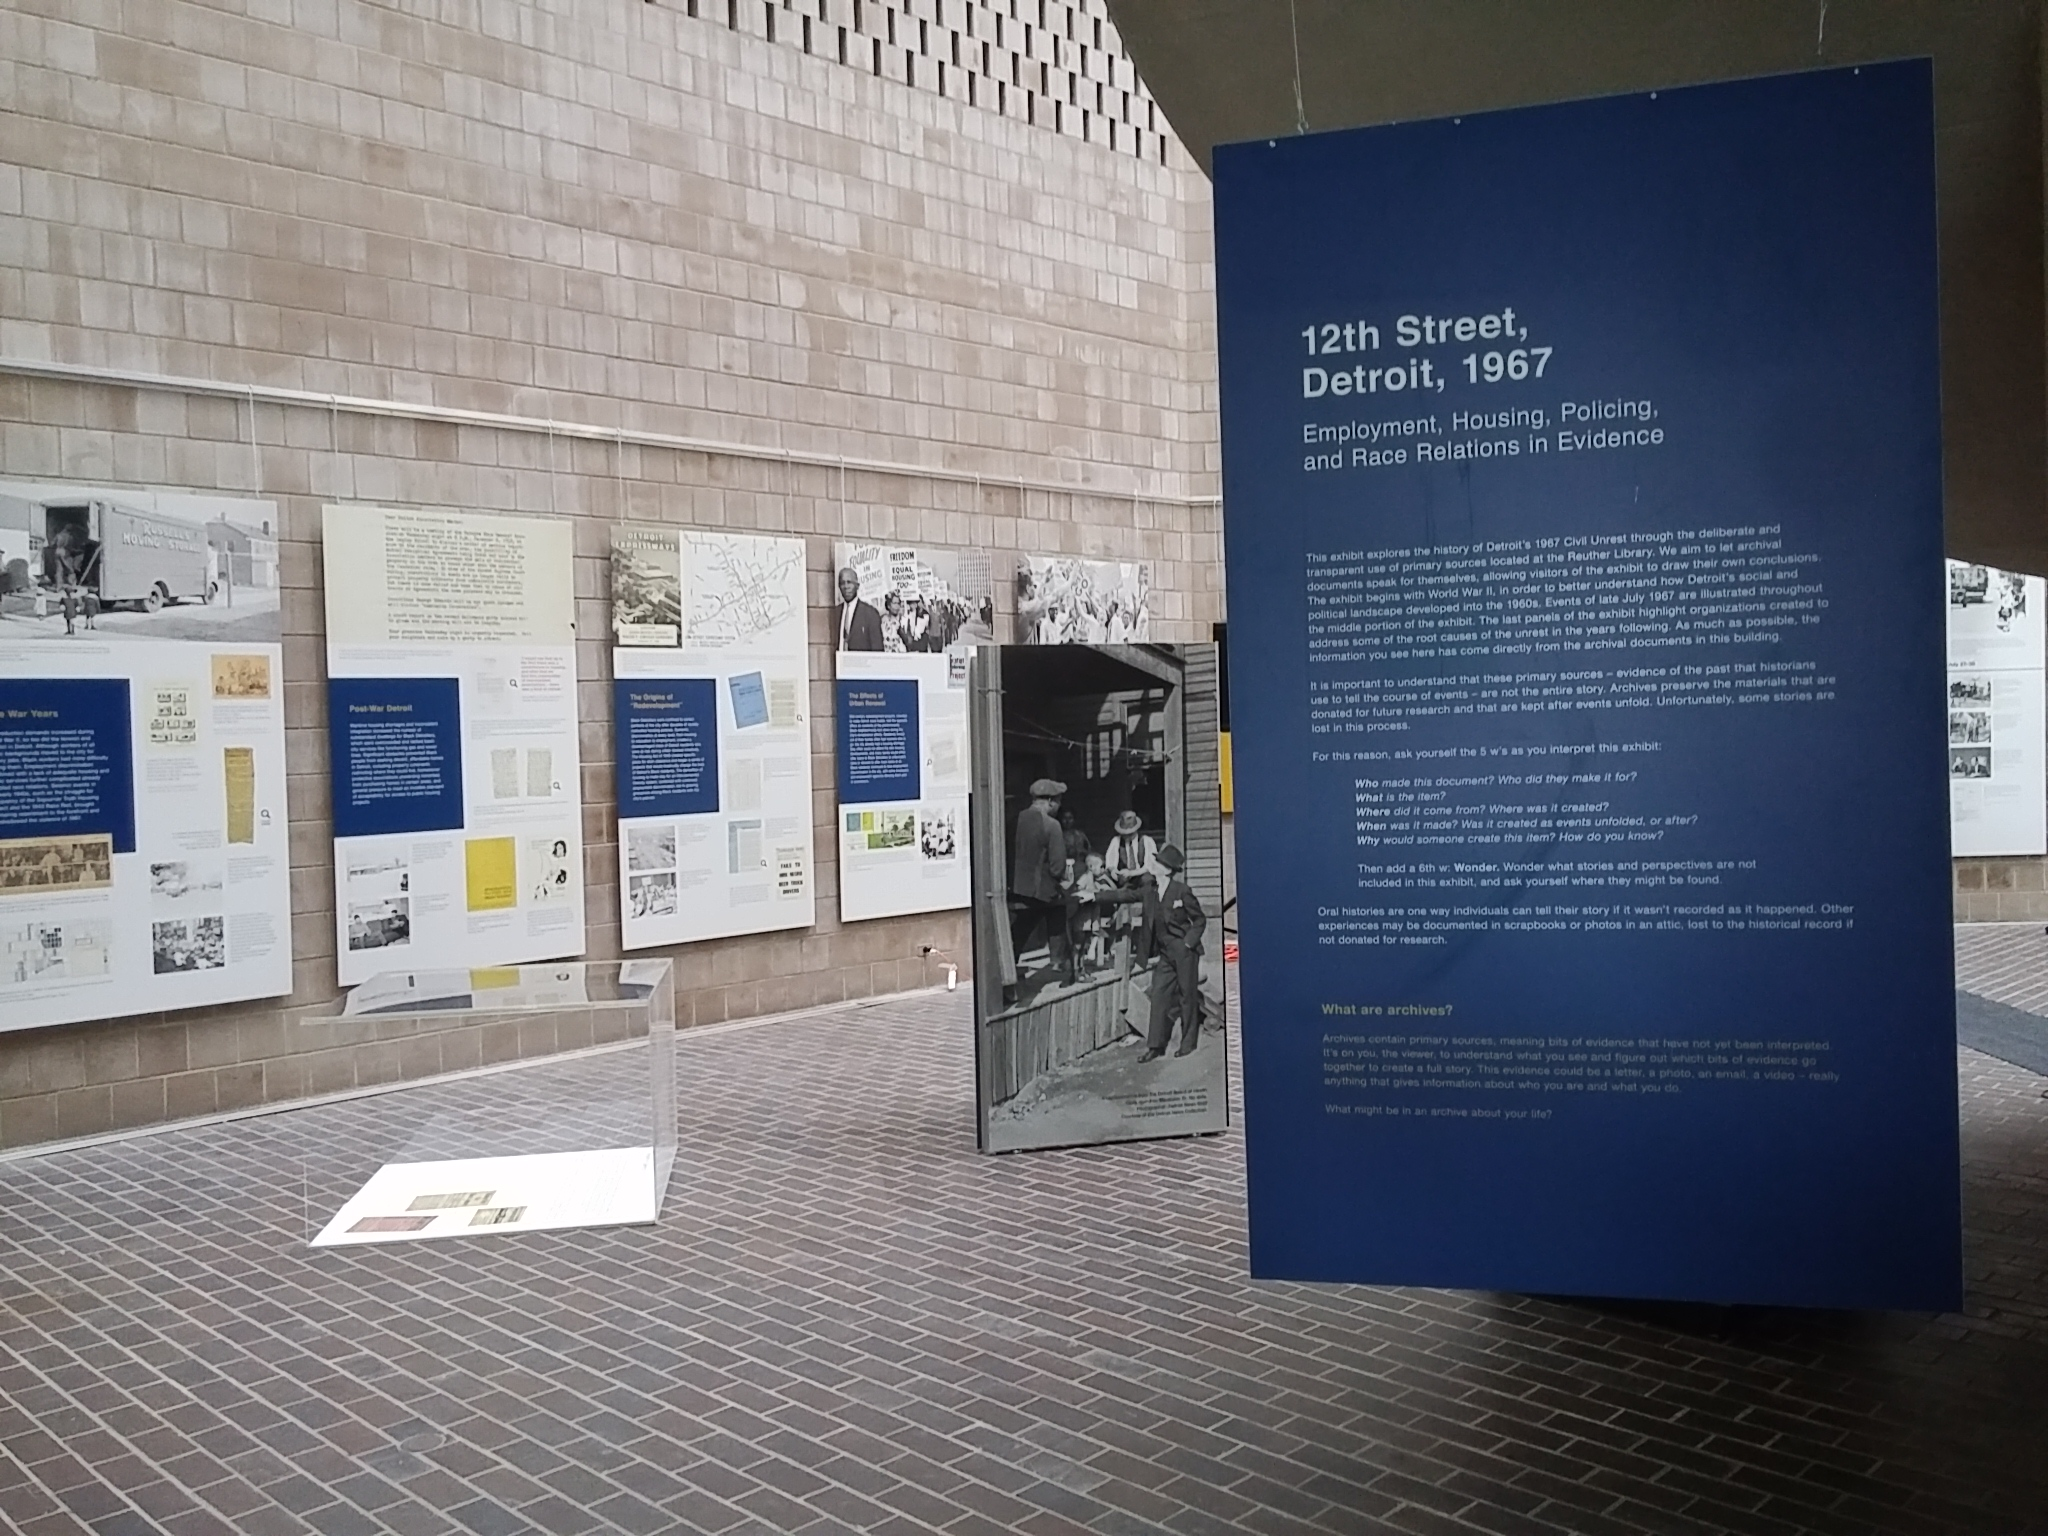 Graphic panels Flutter & Wow designed for the 12th Street Detroit 1967 exhibit.